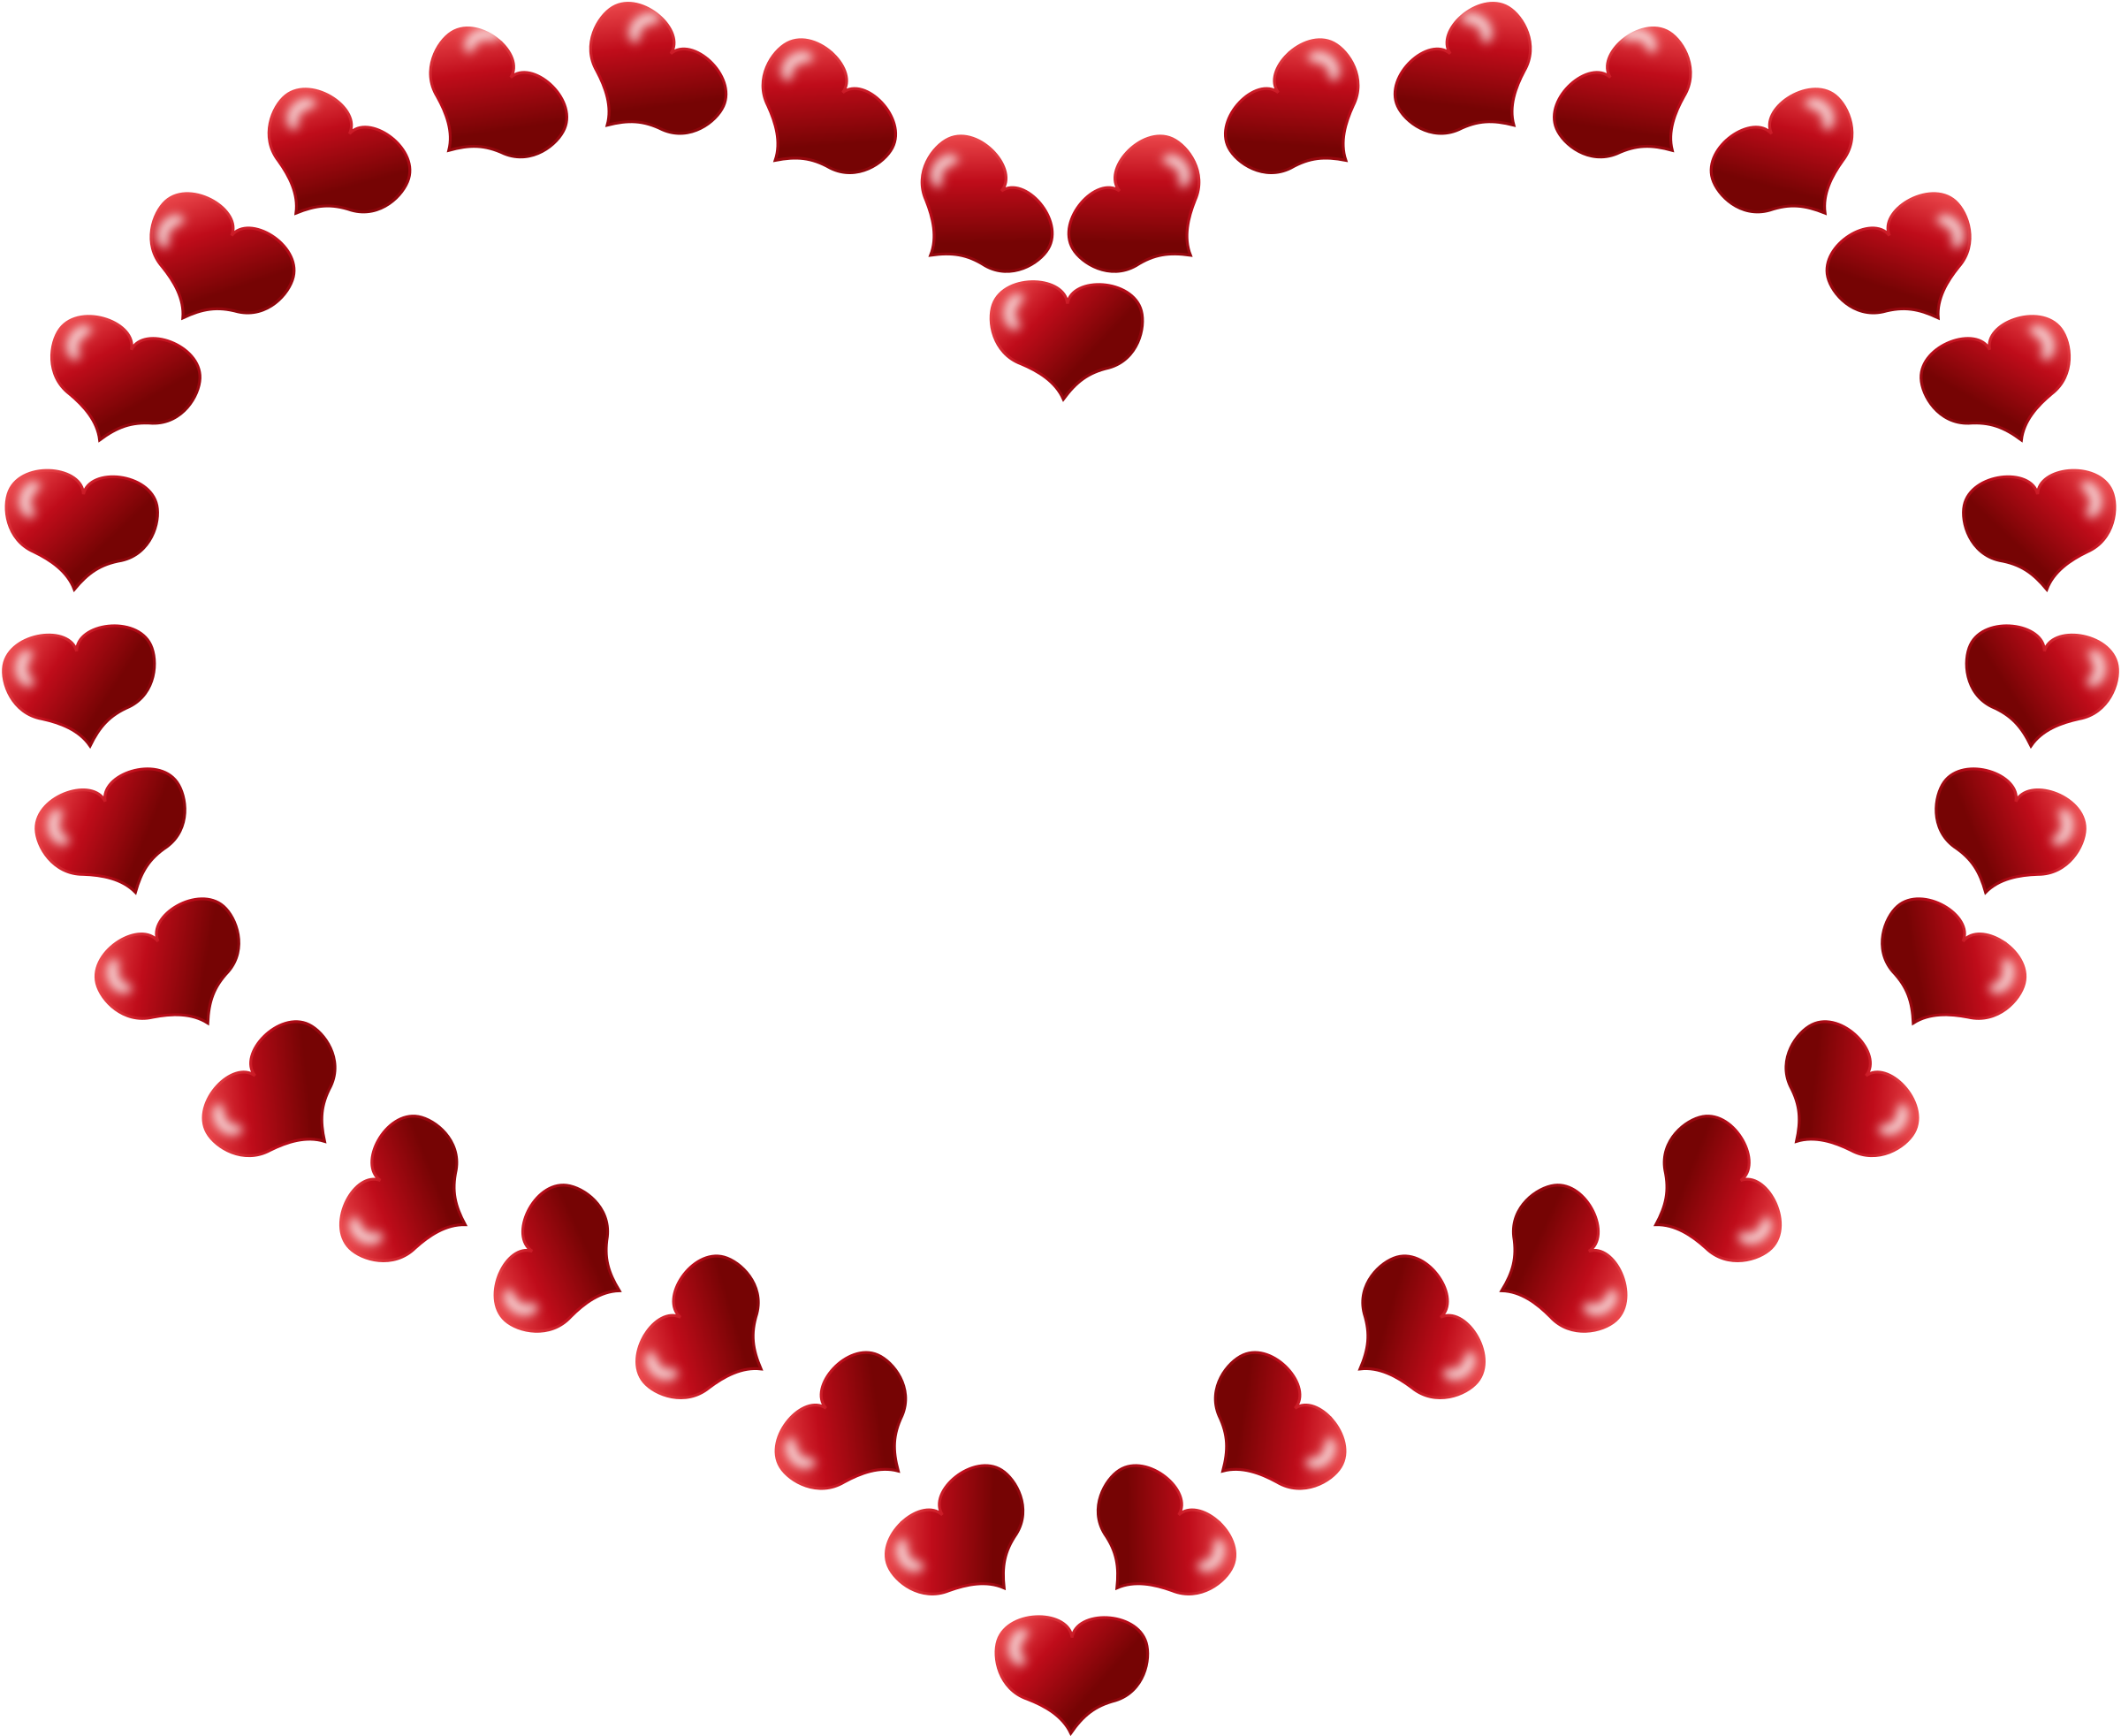 Heart shape png transparent. Red shaped border with